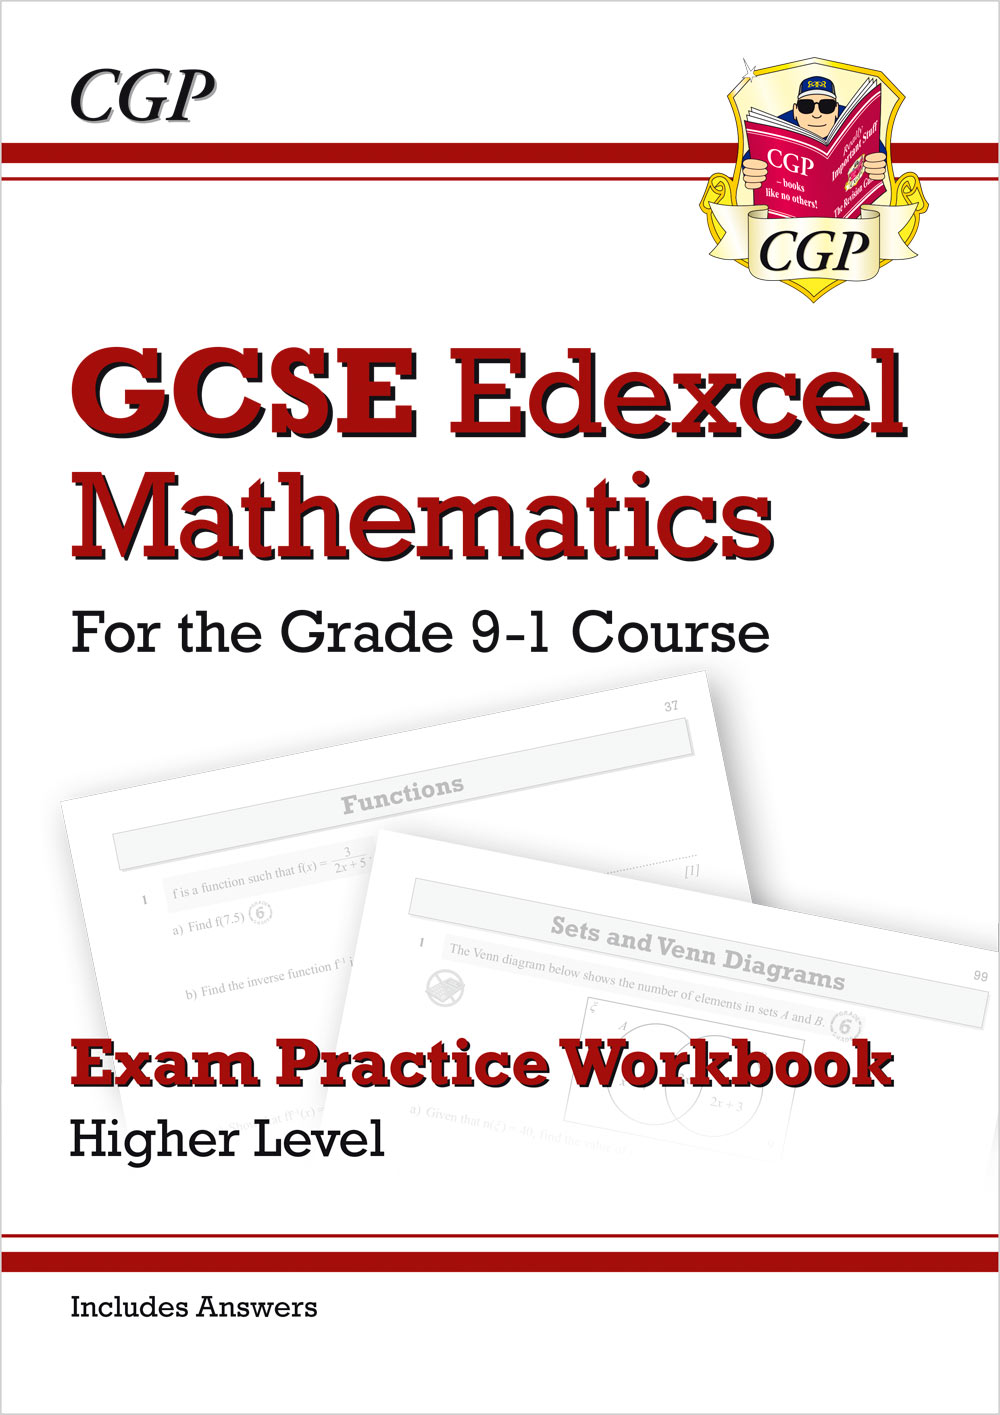 MXHQ42 - GCSE Maths Edexcel Exam Practice Workbook: Higher - for the Grade 9-1 Course (includes Answ